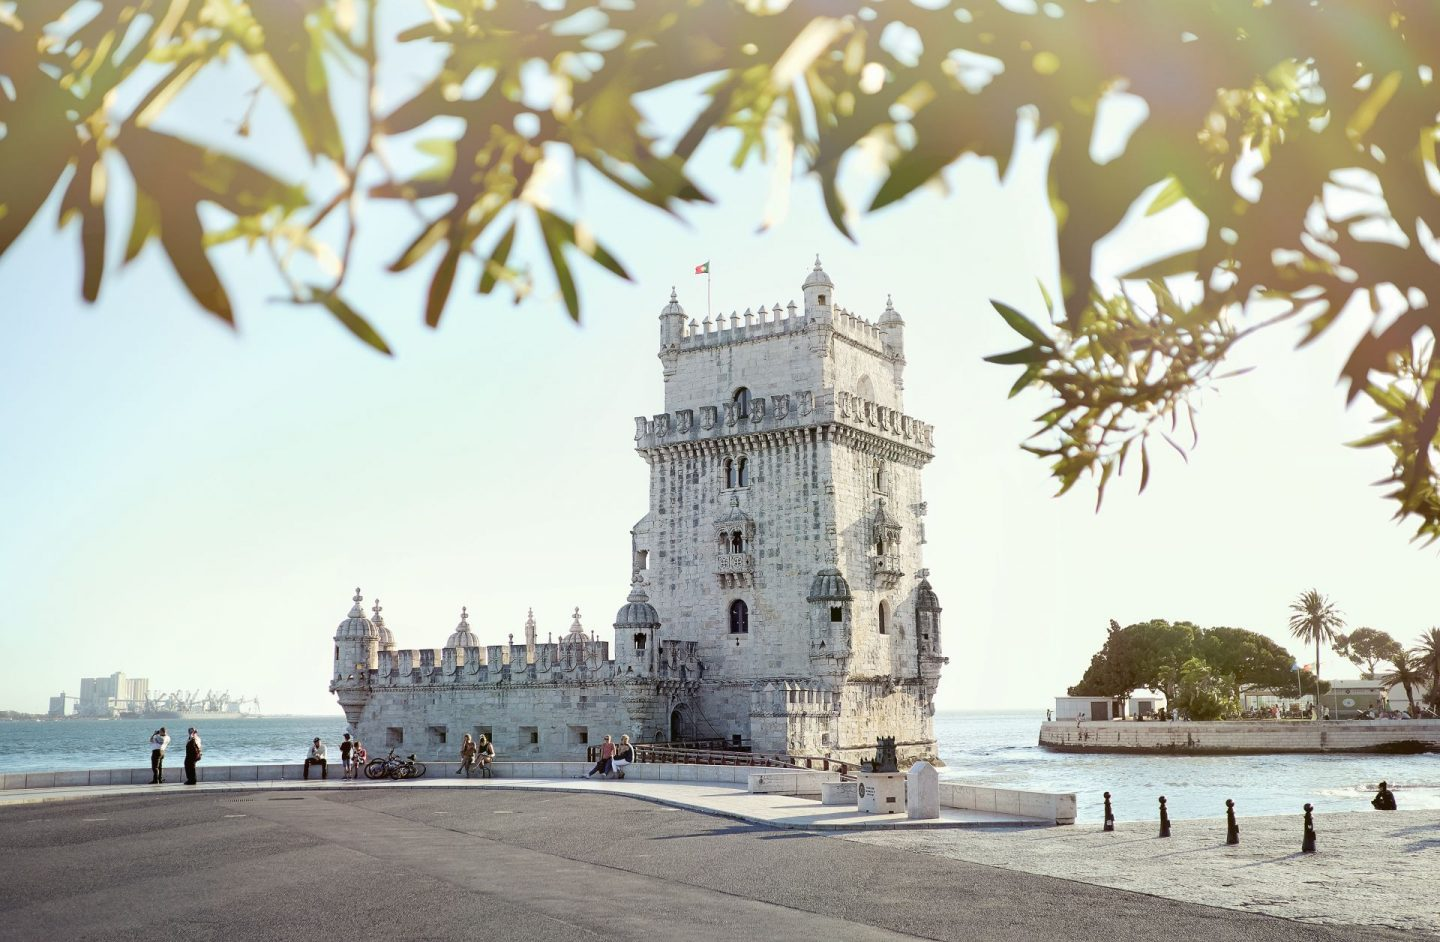 the cities porto, lisbon and sante cruz are amazing to visit on romantic trips, castle in lisbon near the sea